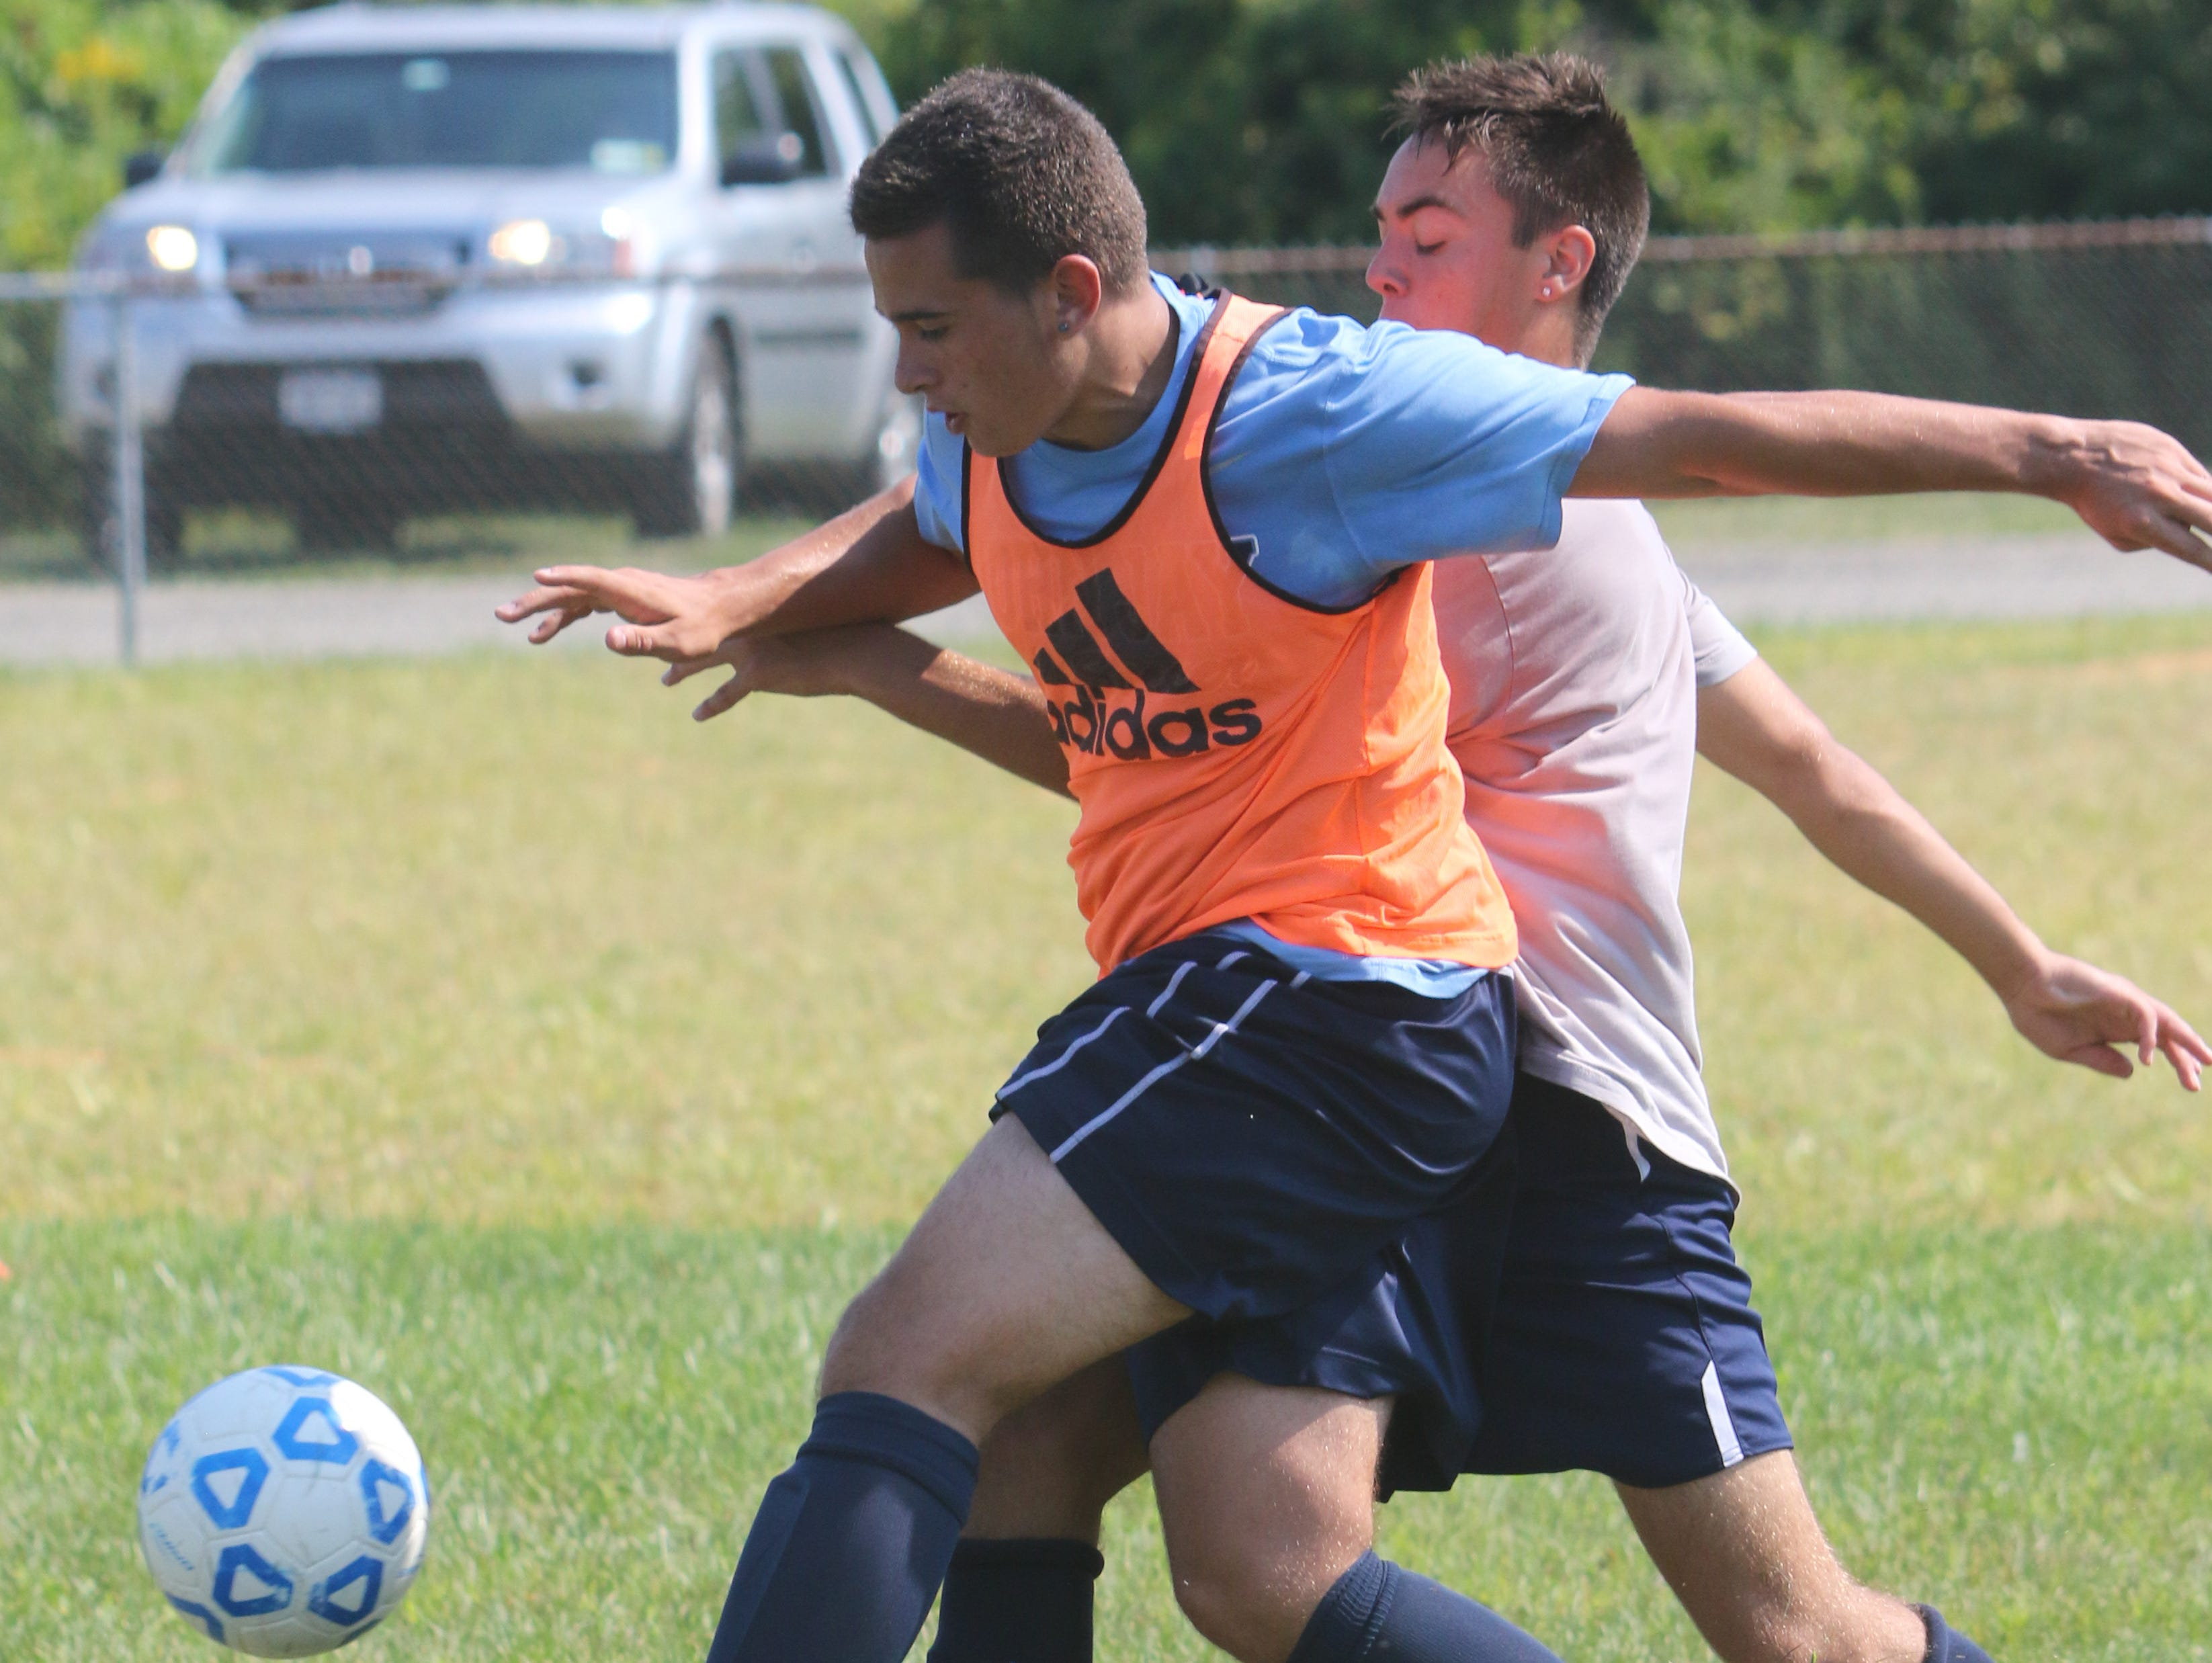 John Jay High School's Luke Melvin attempts to keep possession of the ball during practice on Wednesday.